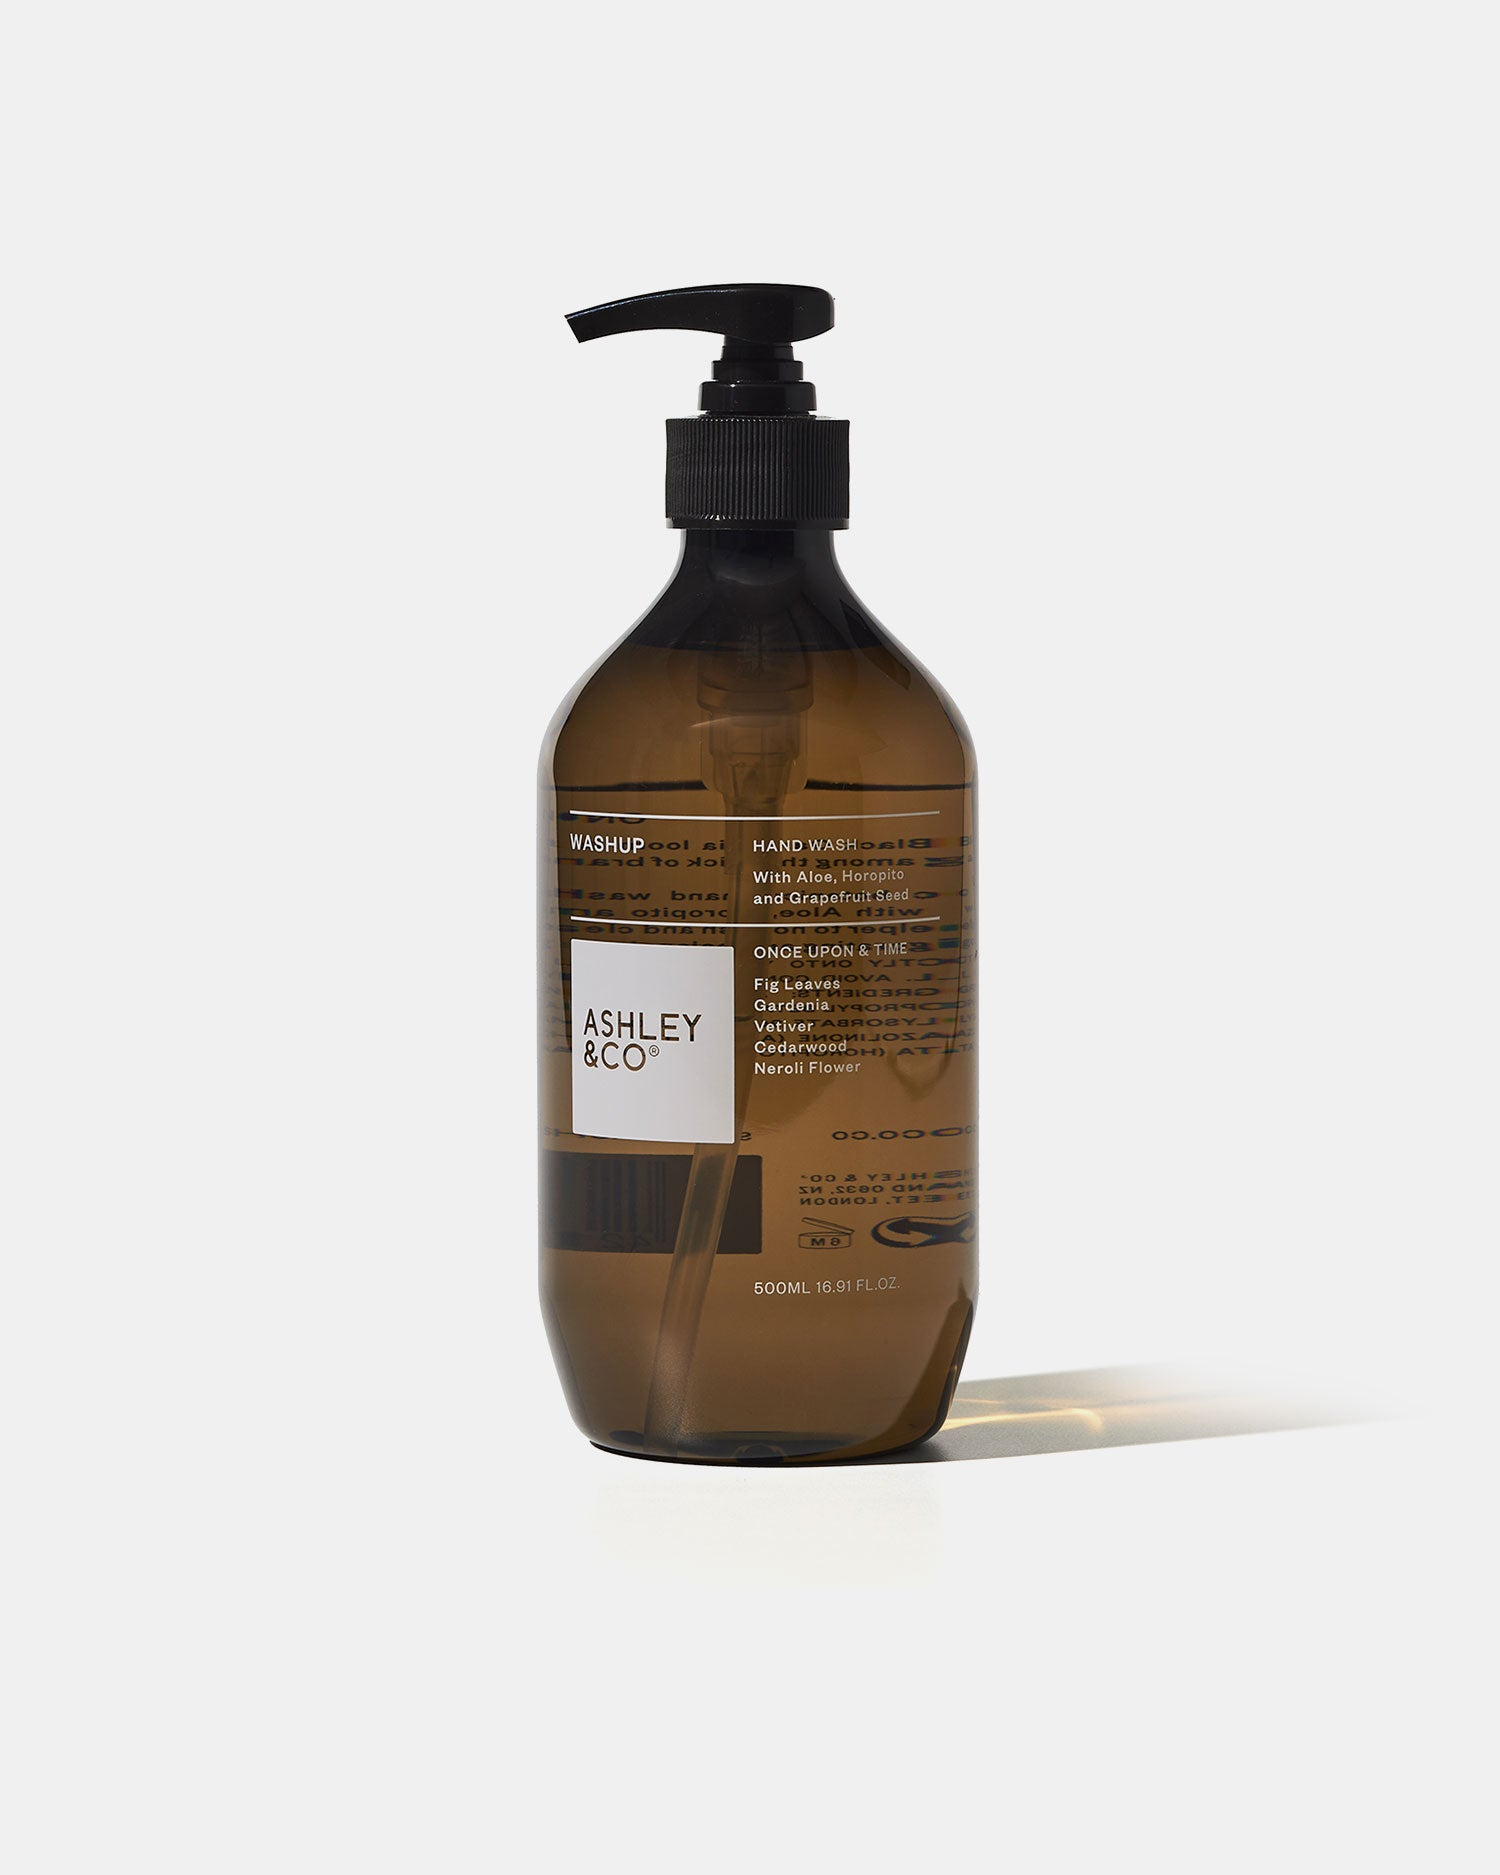 Ashley & Co Hand Wash - Once Upon & Time